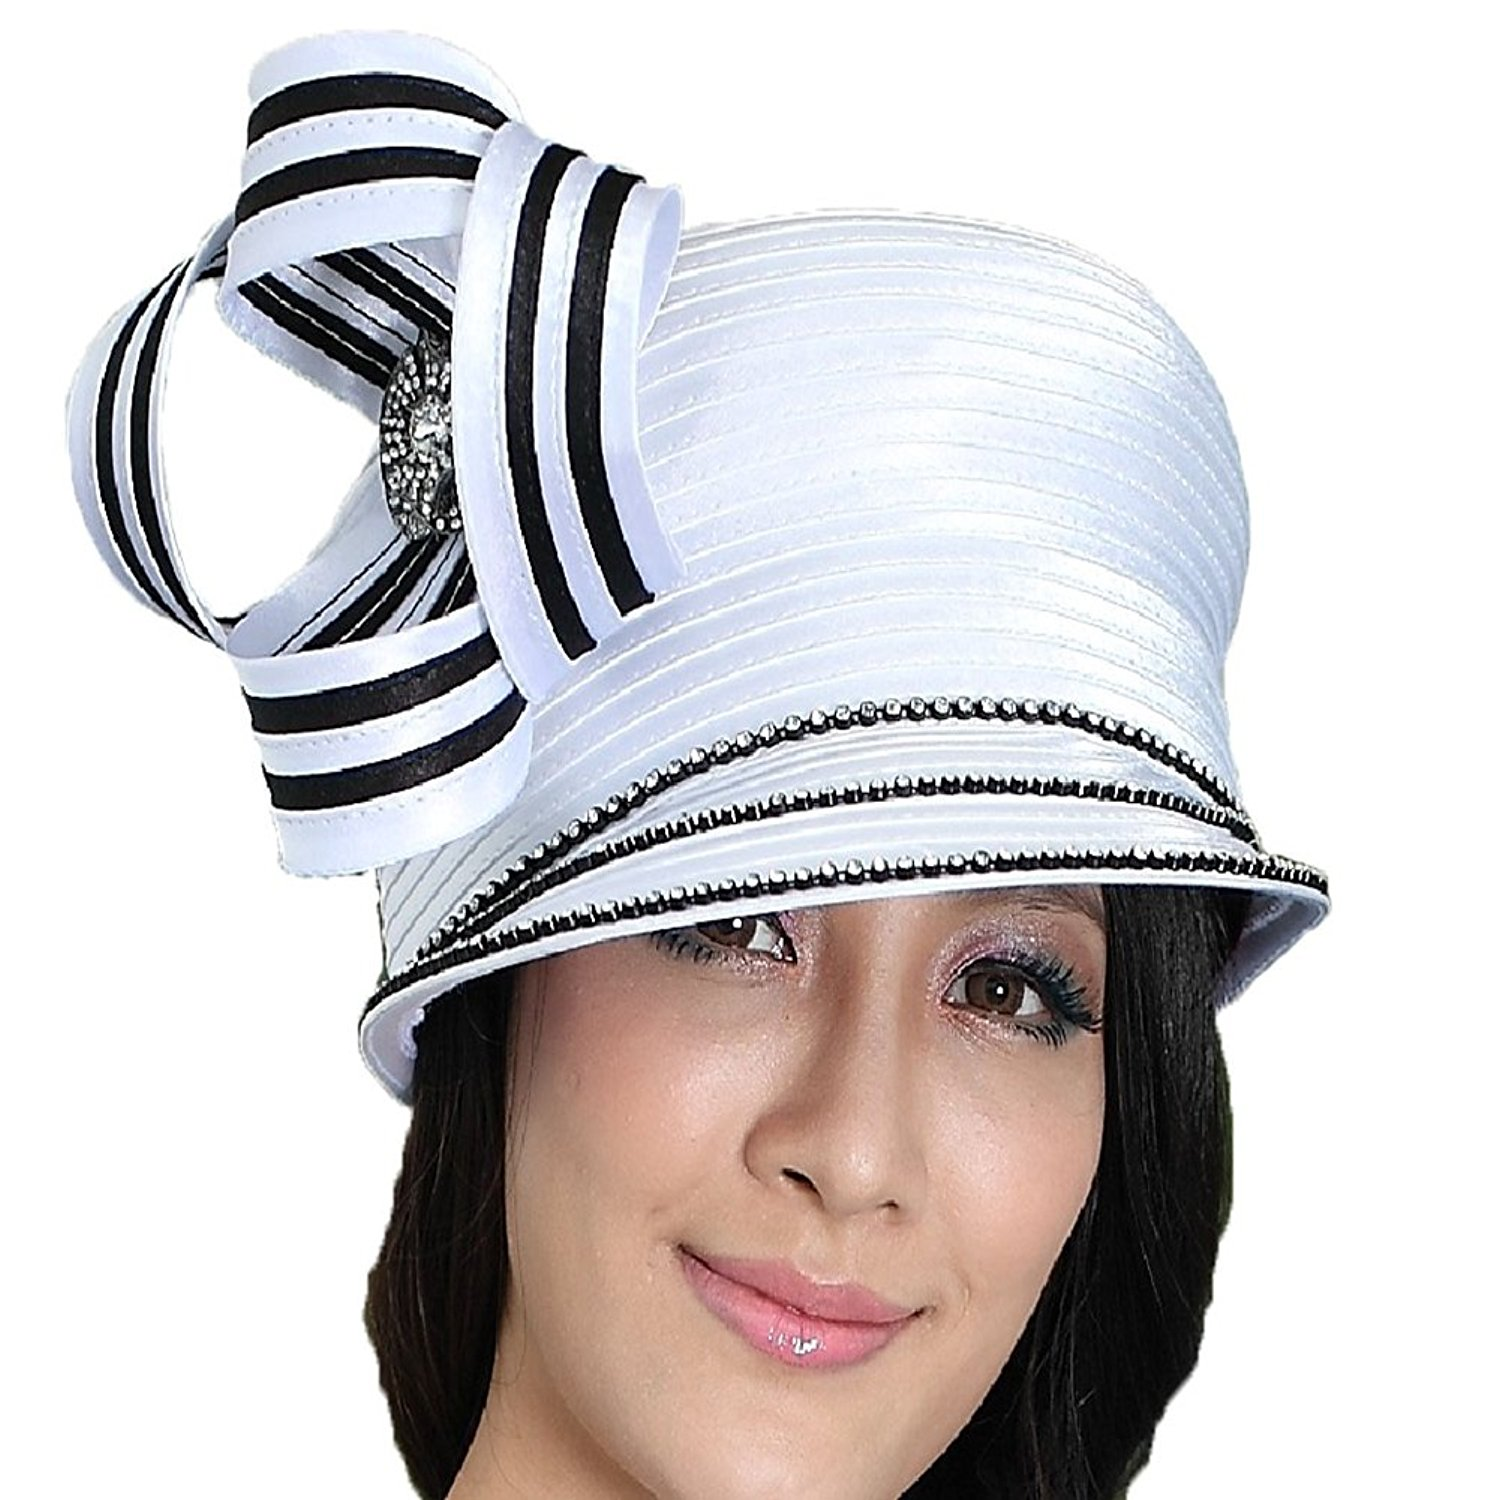 877876ec Get Quotations · June's Young Women Hat Church Hats for Women Satin Hat  Ribbon Bright Color